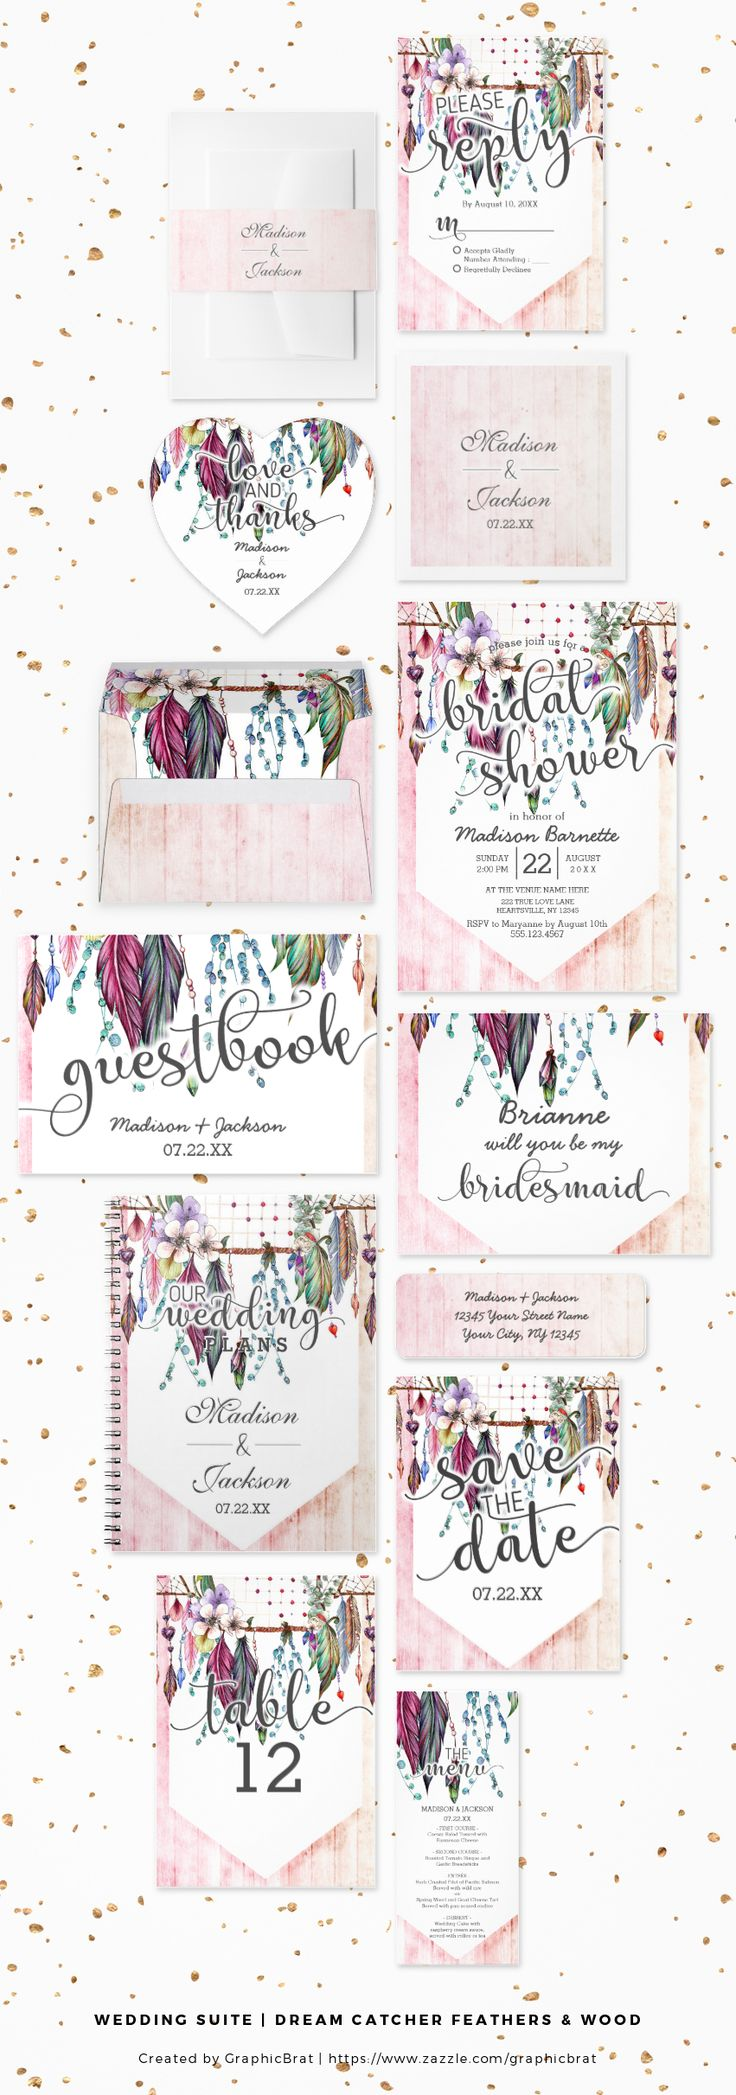 97 best Wedding Invitation Suite Collections - Daily images on Pinterest